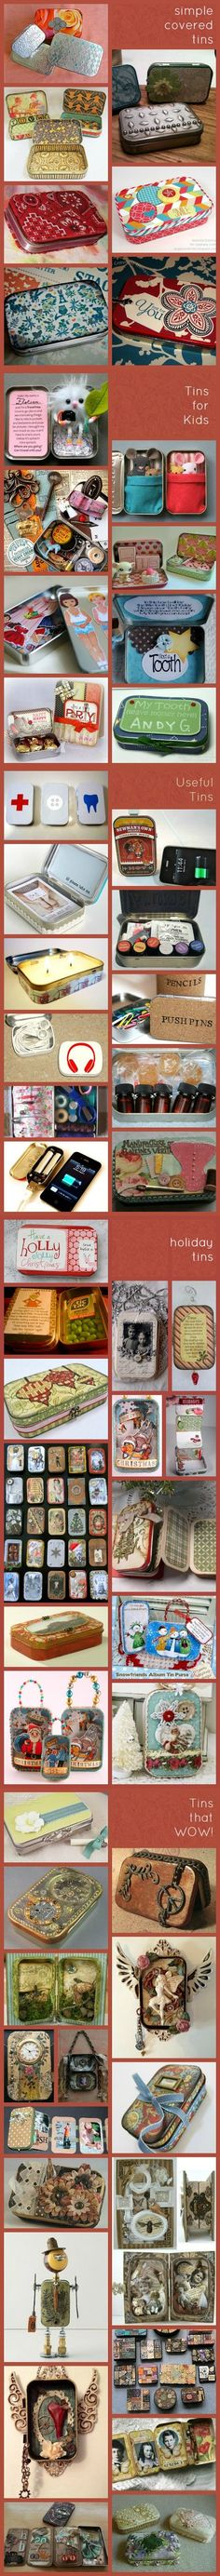 Reuses for Altoid tins - fun little projects :-) Tin Can Crafts, Crafts To Make, Fun Crafts, Crafts For Kids, Altered Tins, Mint Tins, Tin Art, Altoids Tins, Cool Ideas